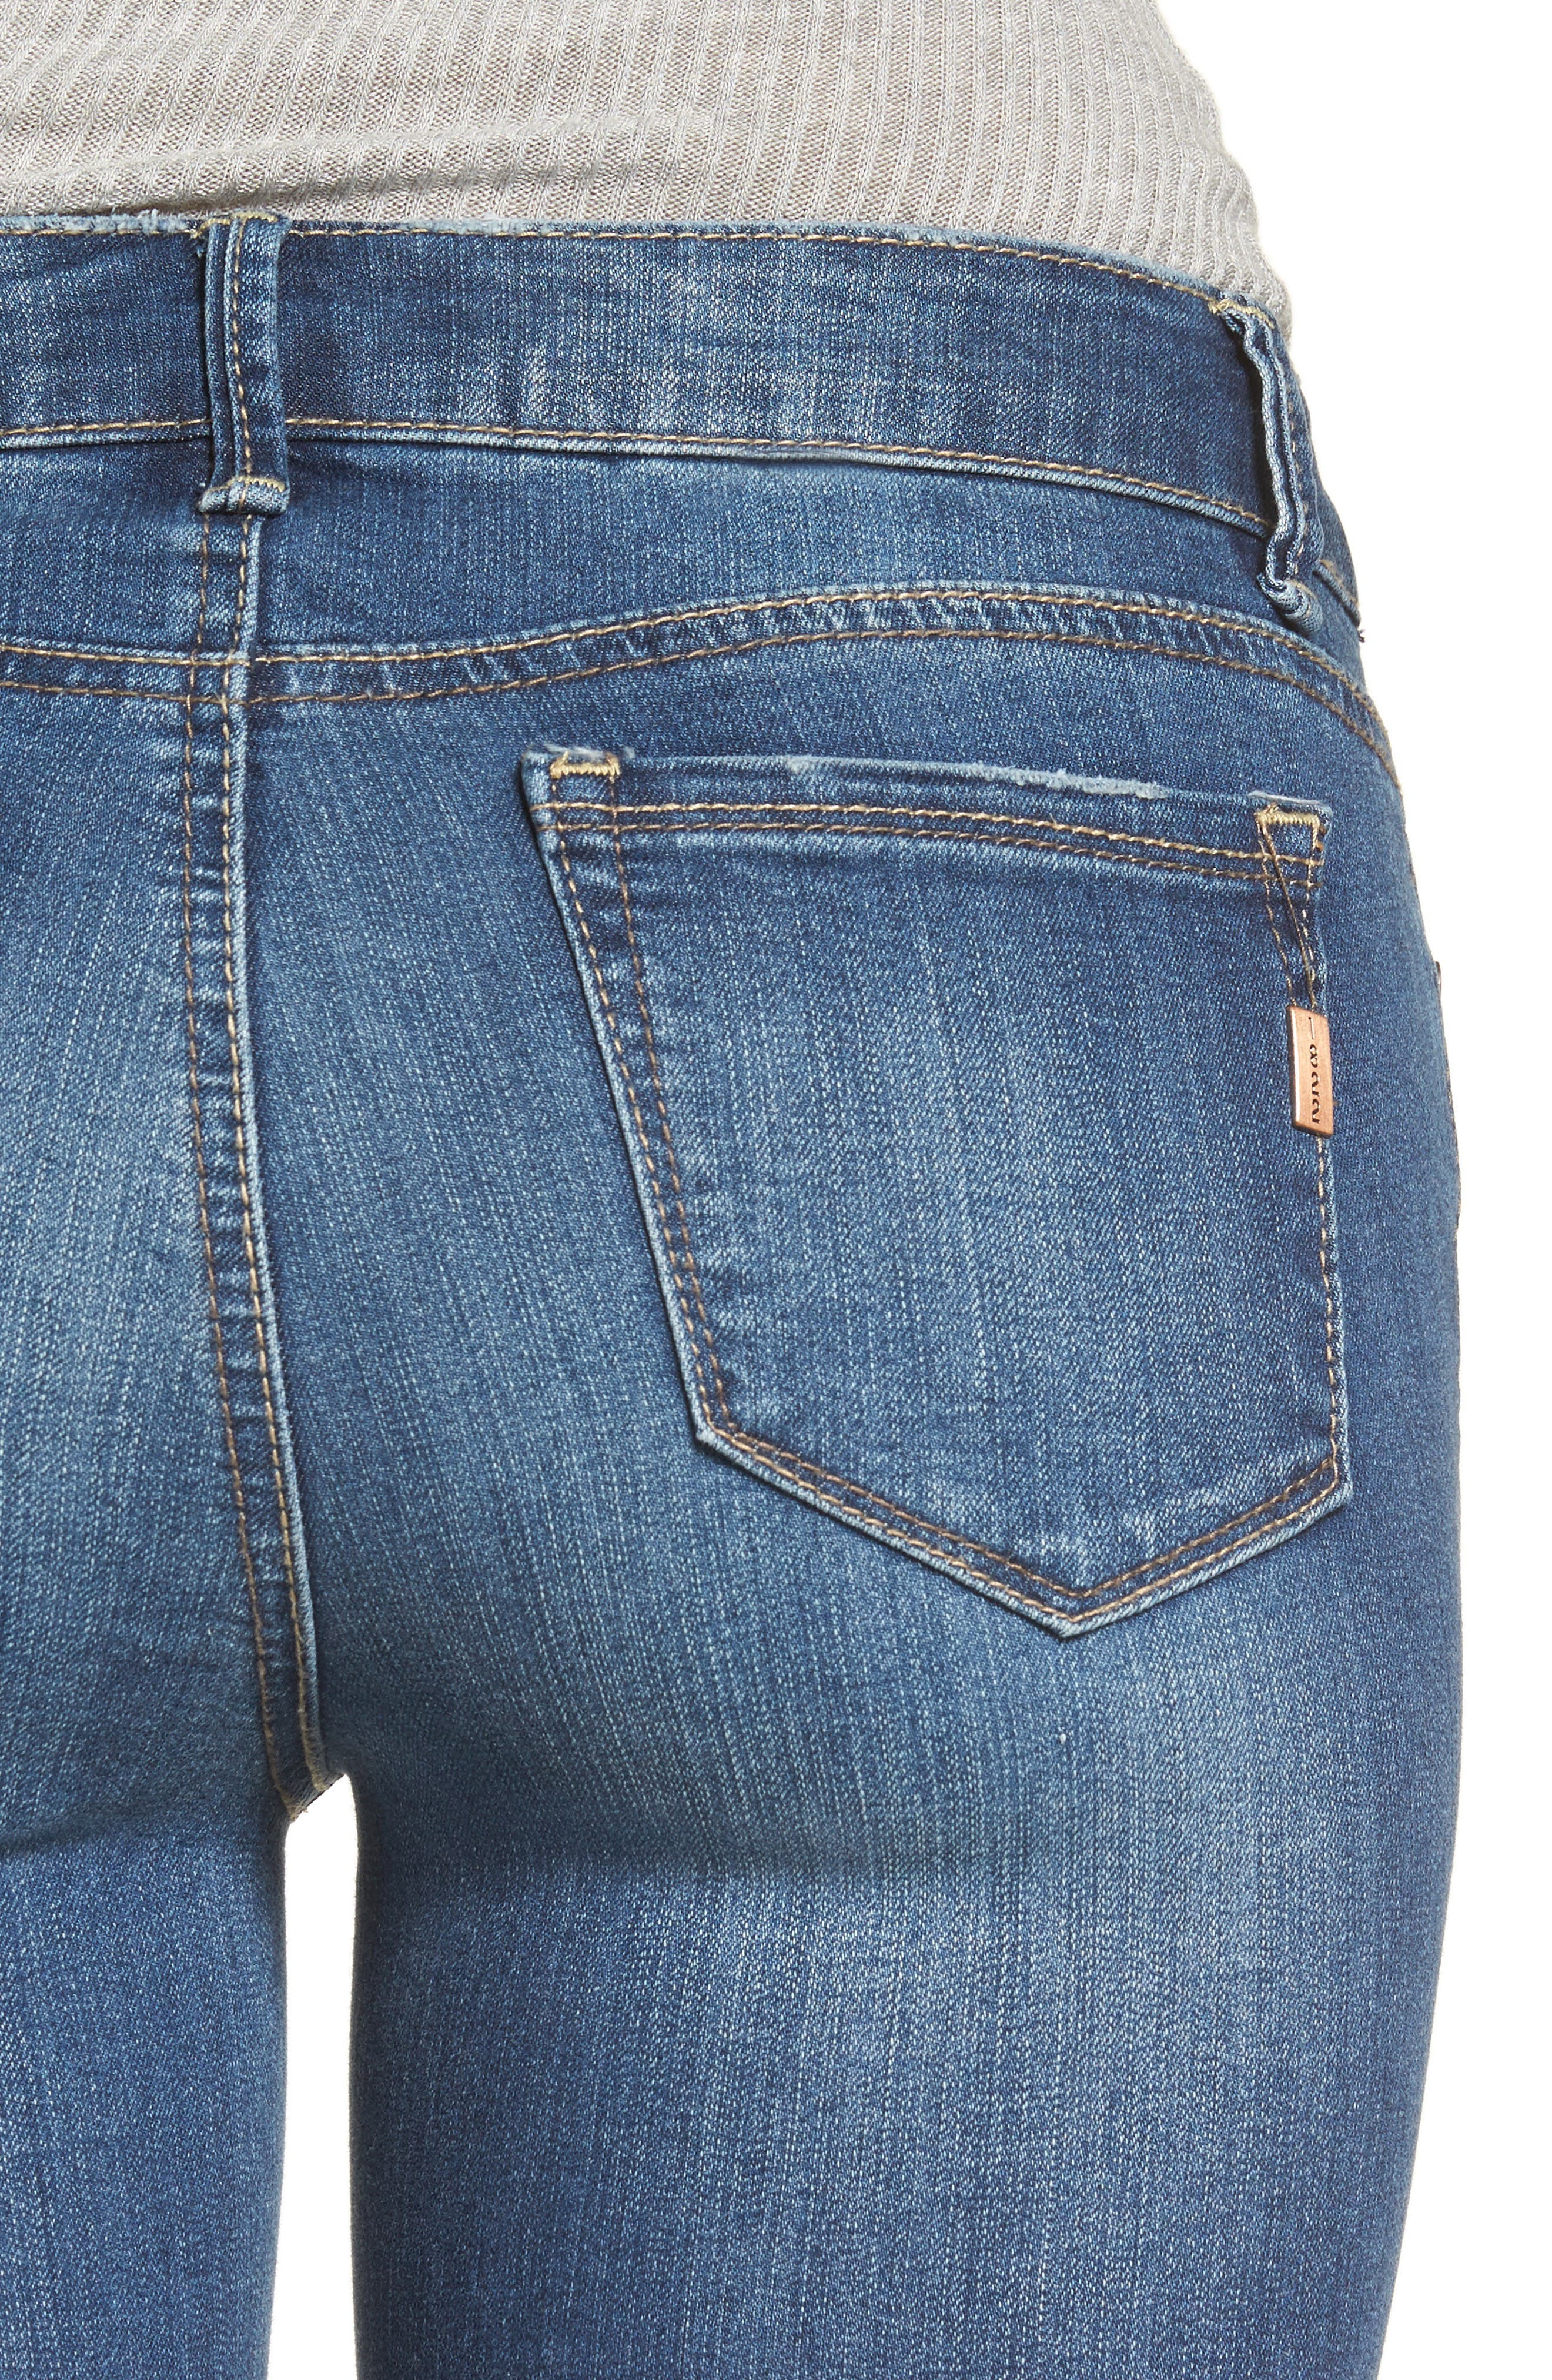 Cuffed Crop Skinny Jeans,                             Alternate thumbnail 4, color,                             IRENE